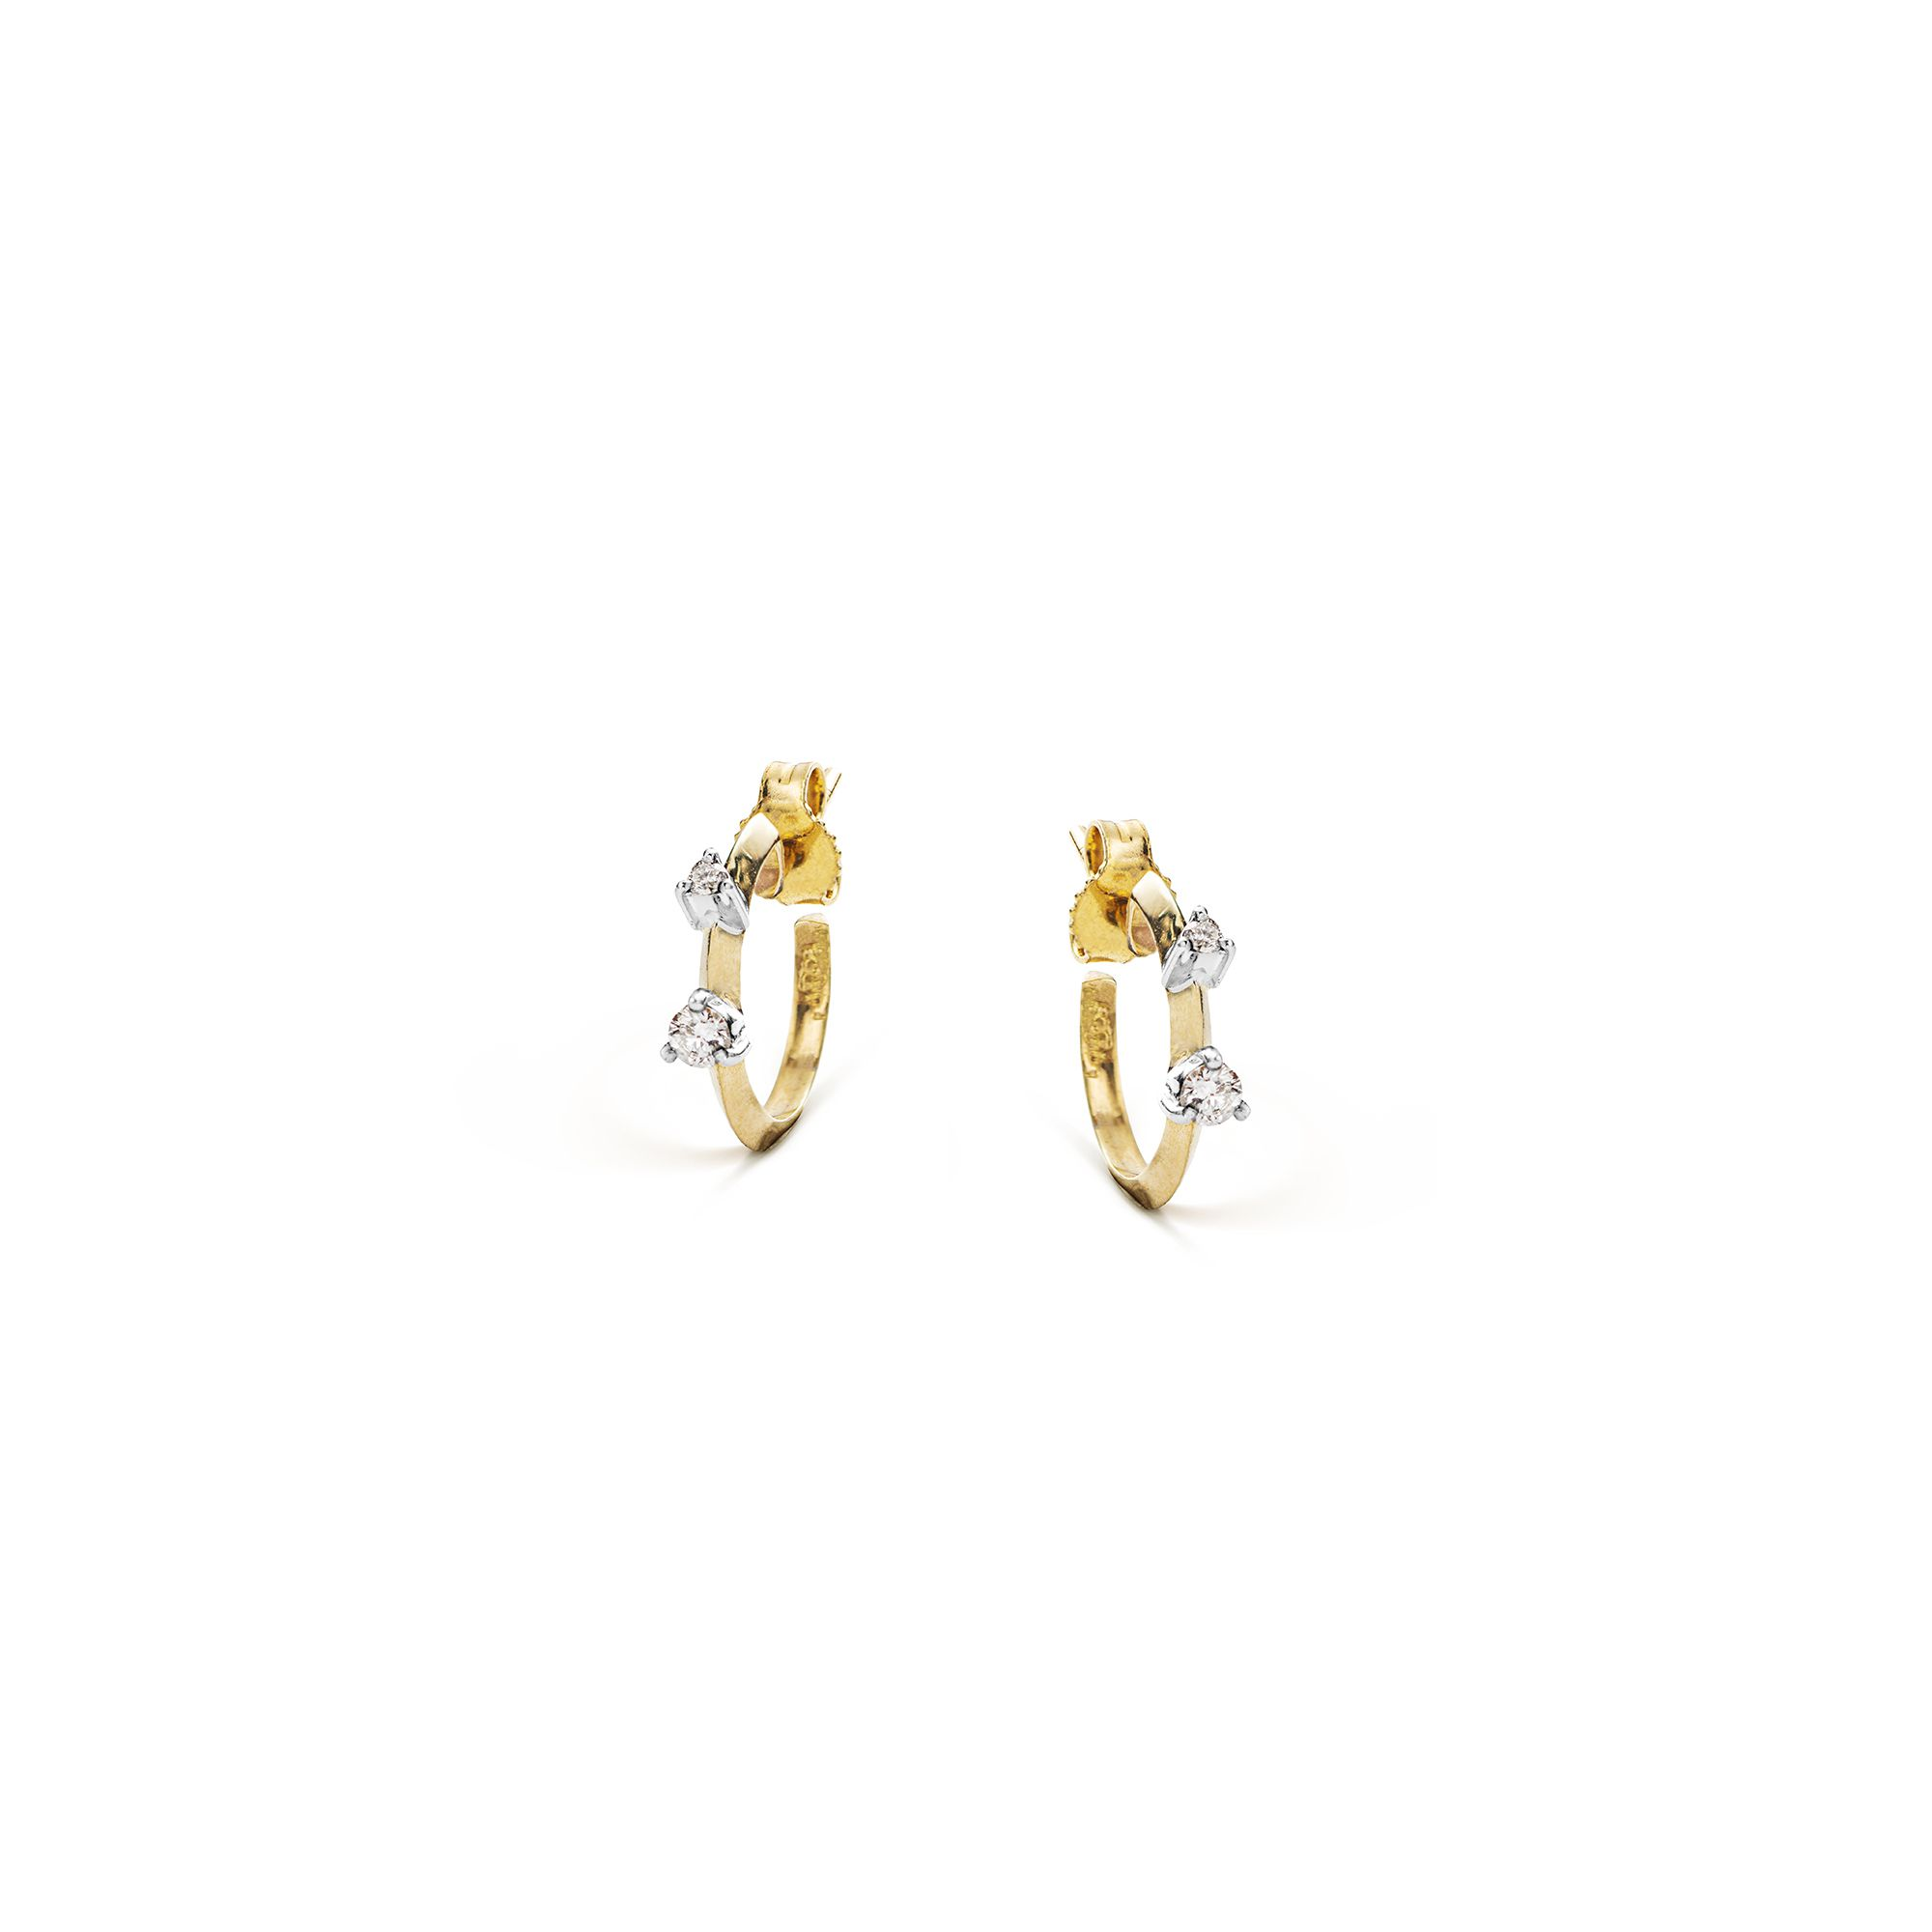 Yellow gold 'Balance' hoop earrings xs yellow gold hoop earrings with diamonds